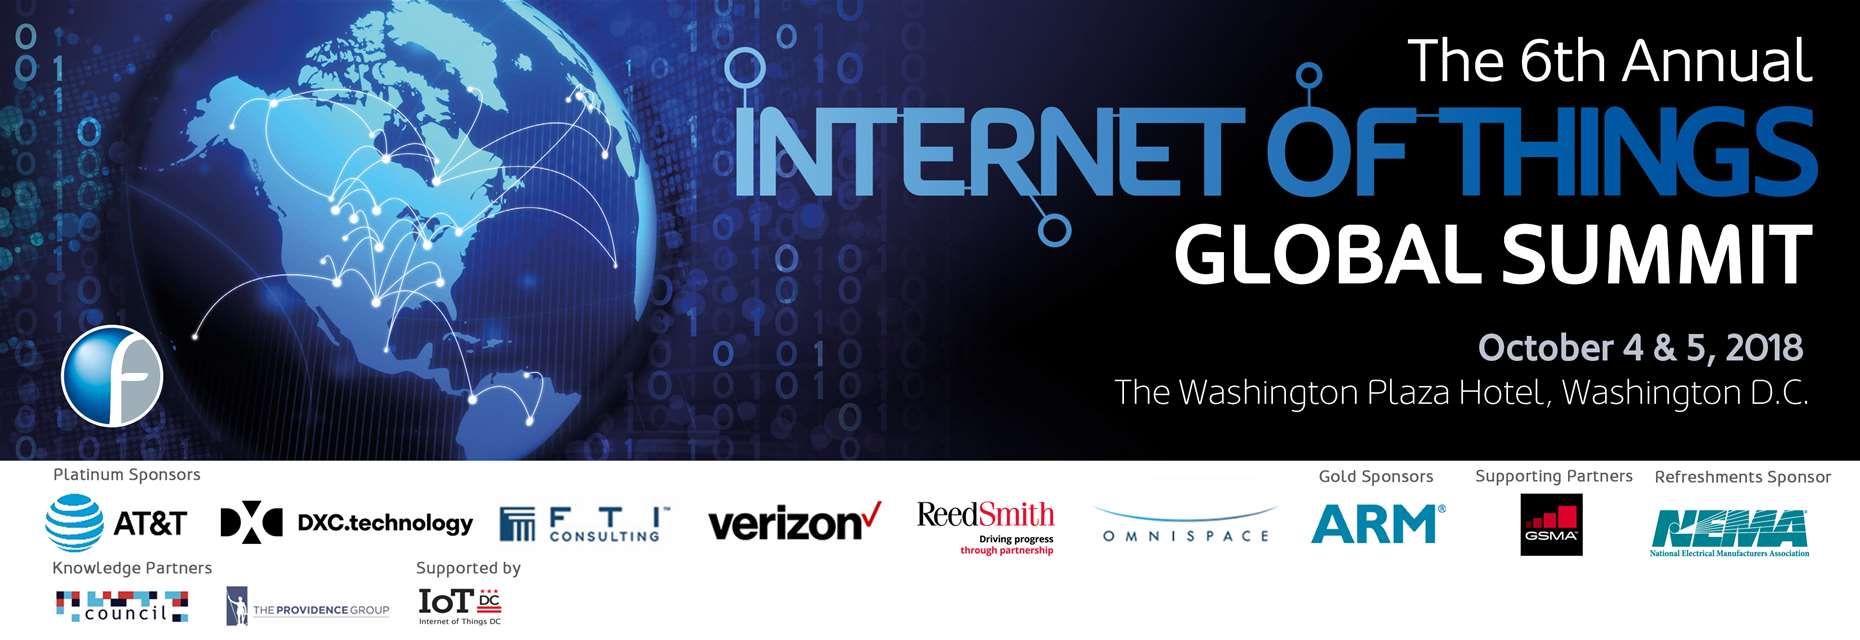 The 6th Annual Internet of Things Global Summit | Speaker